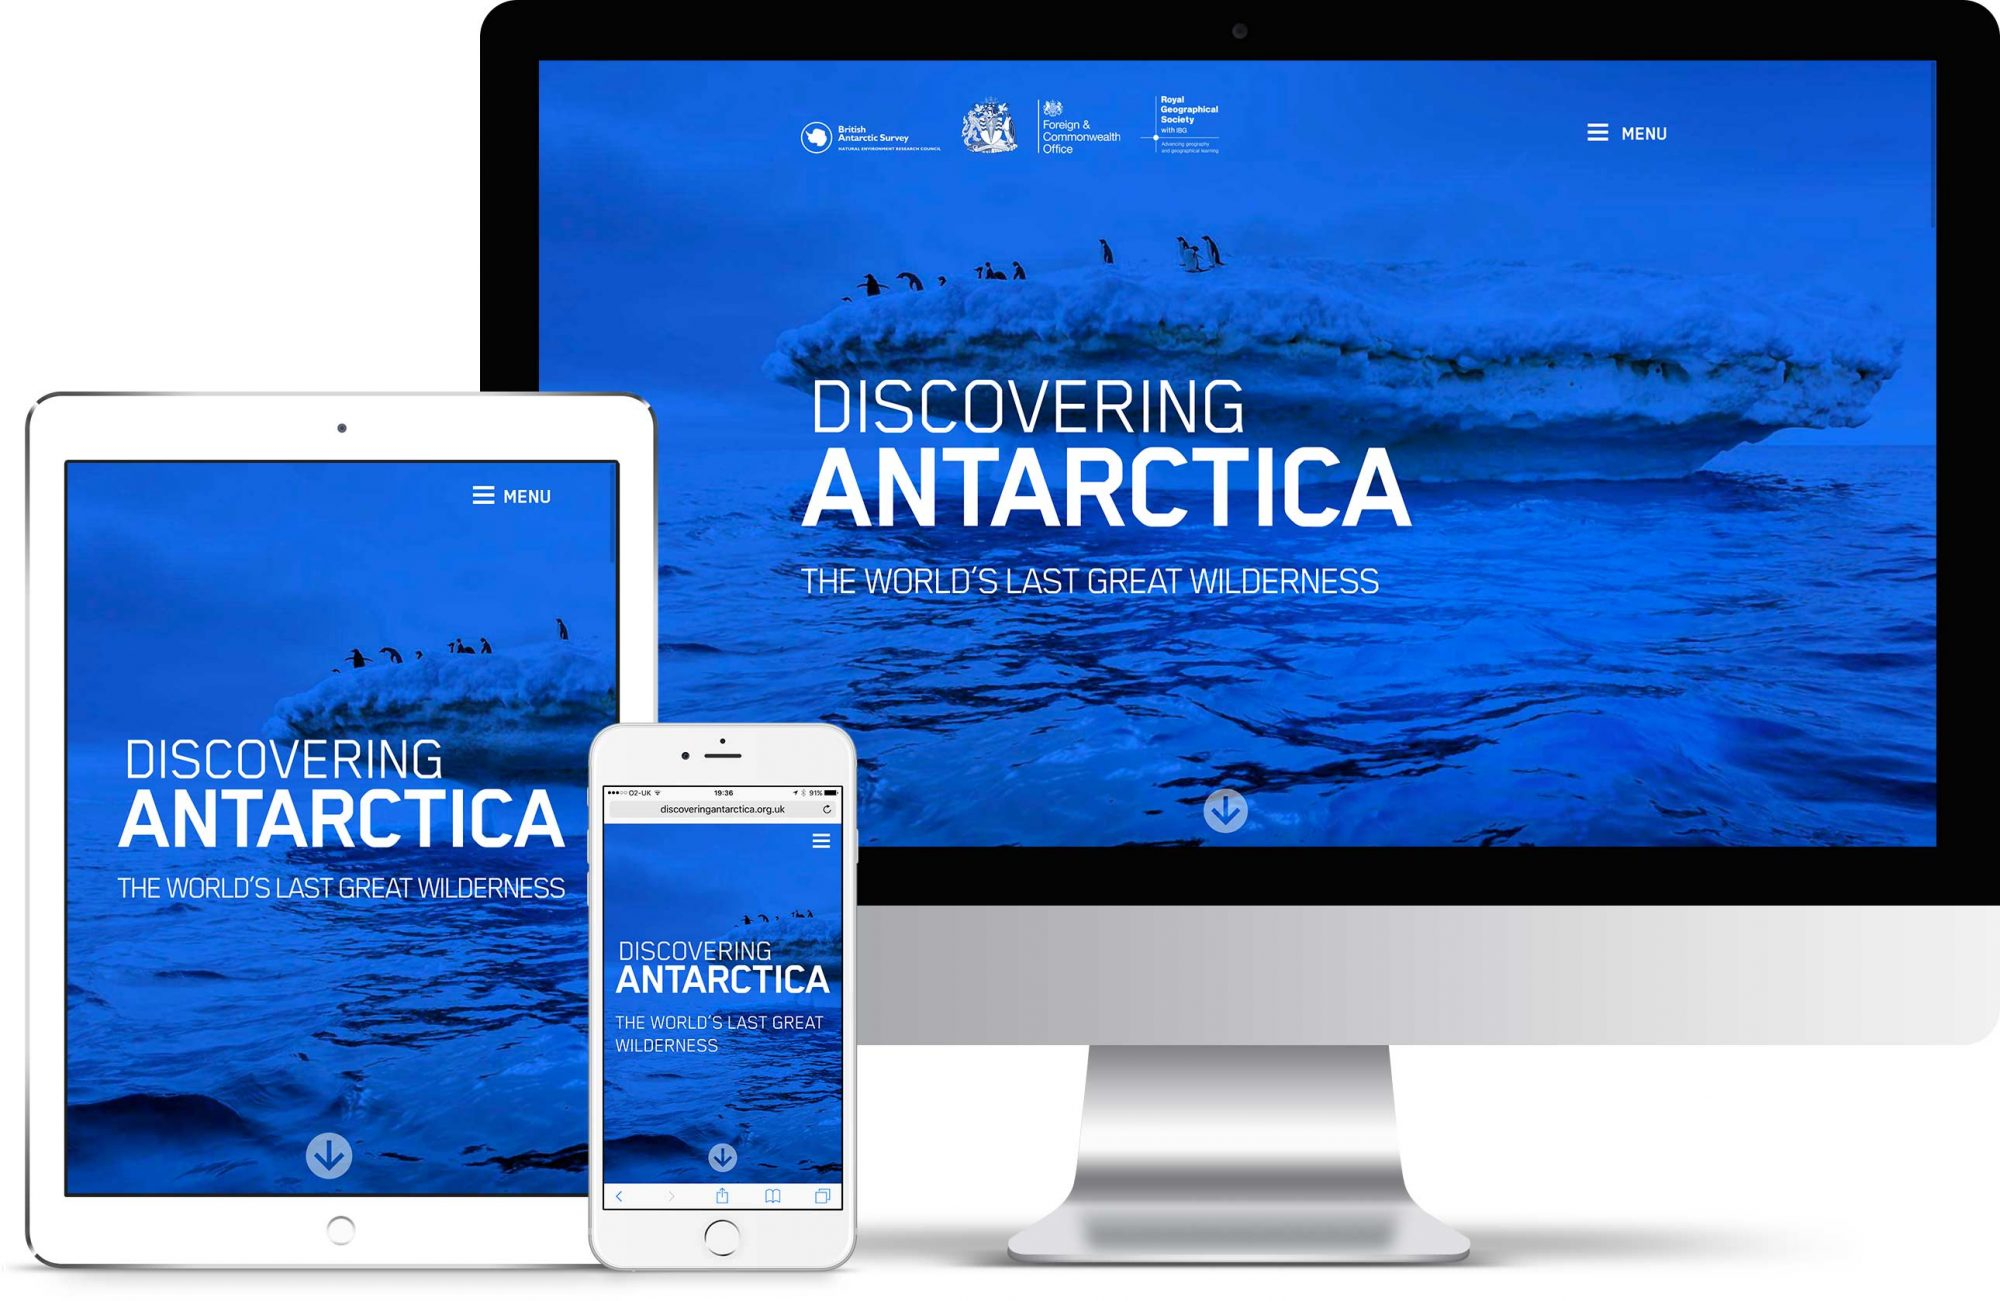 View of Discovering Antarctica on various screens